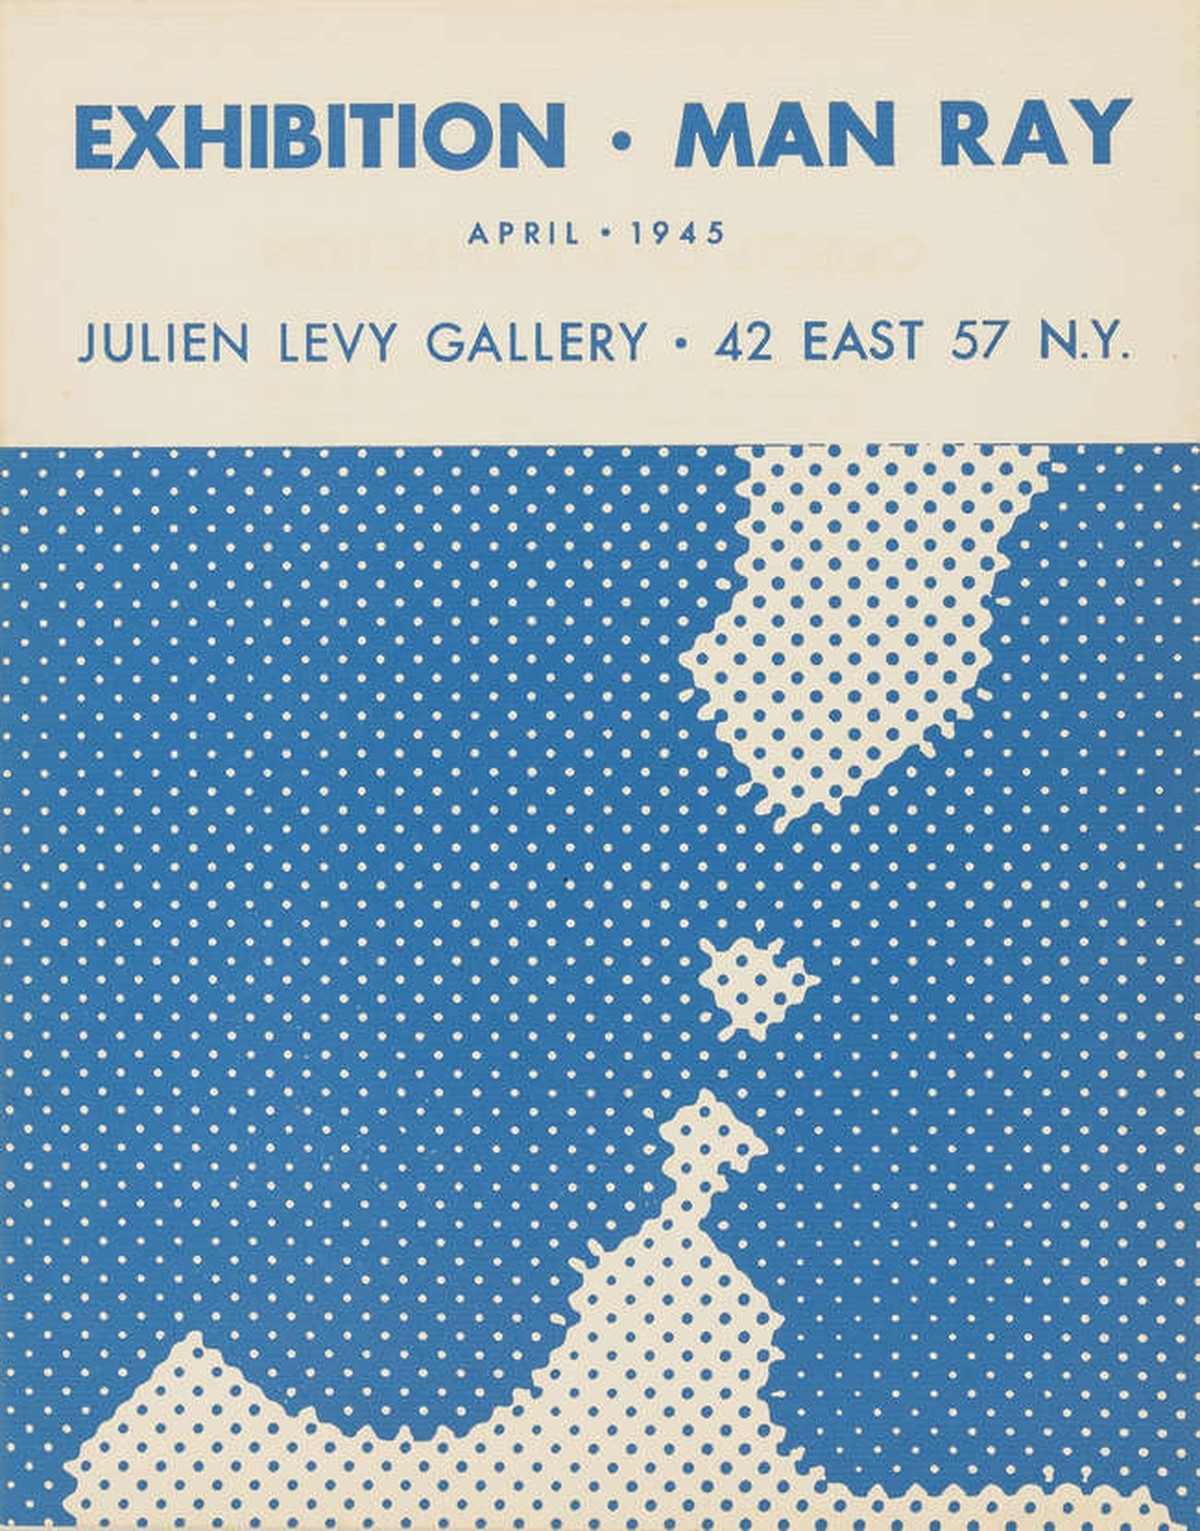 Marcel Duchamp (1887-1968) Brochure for the Julien Levy Gallery Exhibition Man Ray April 1945